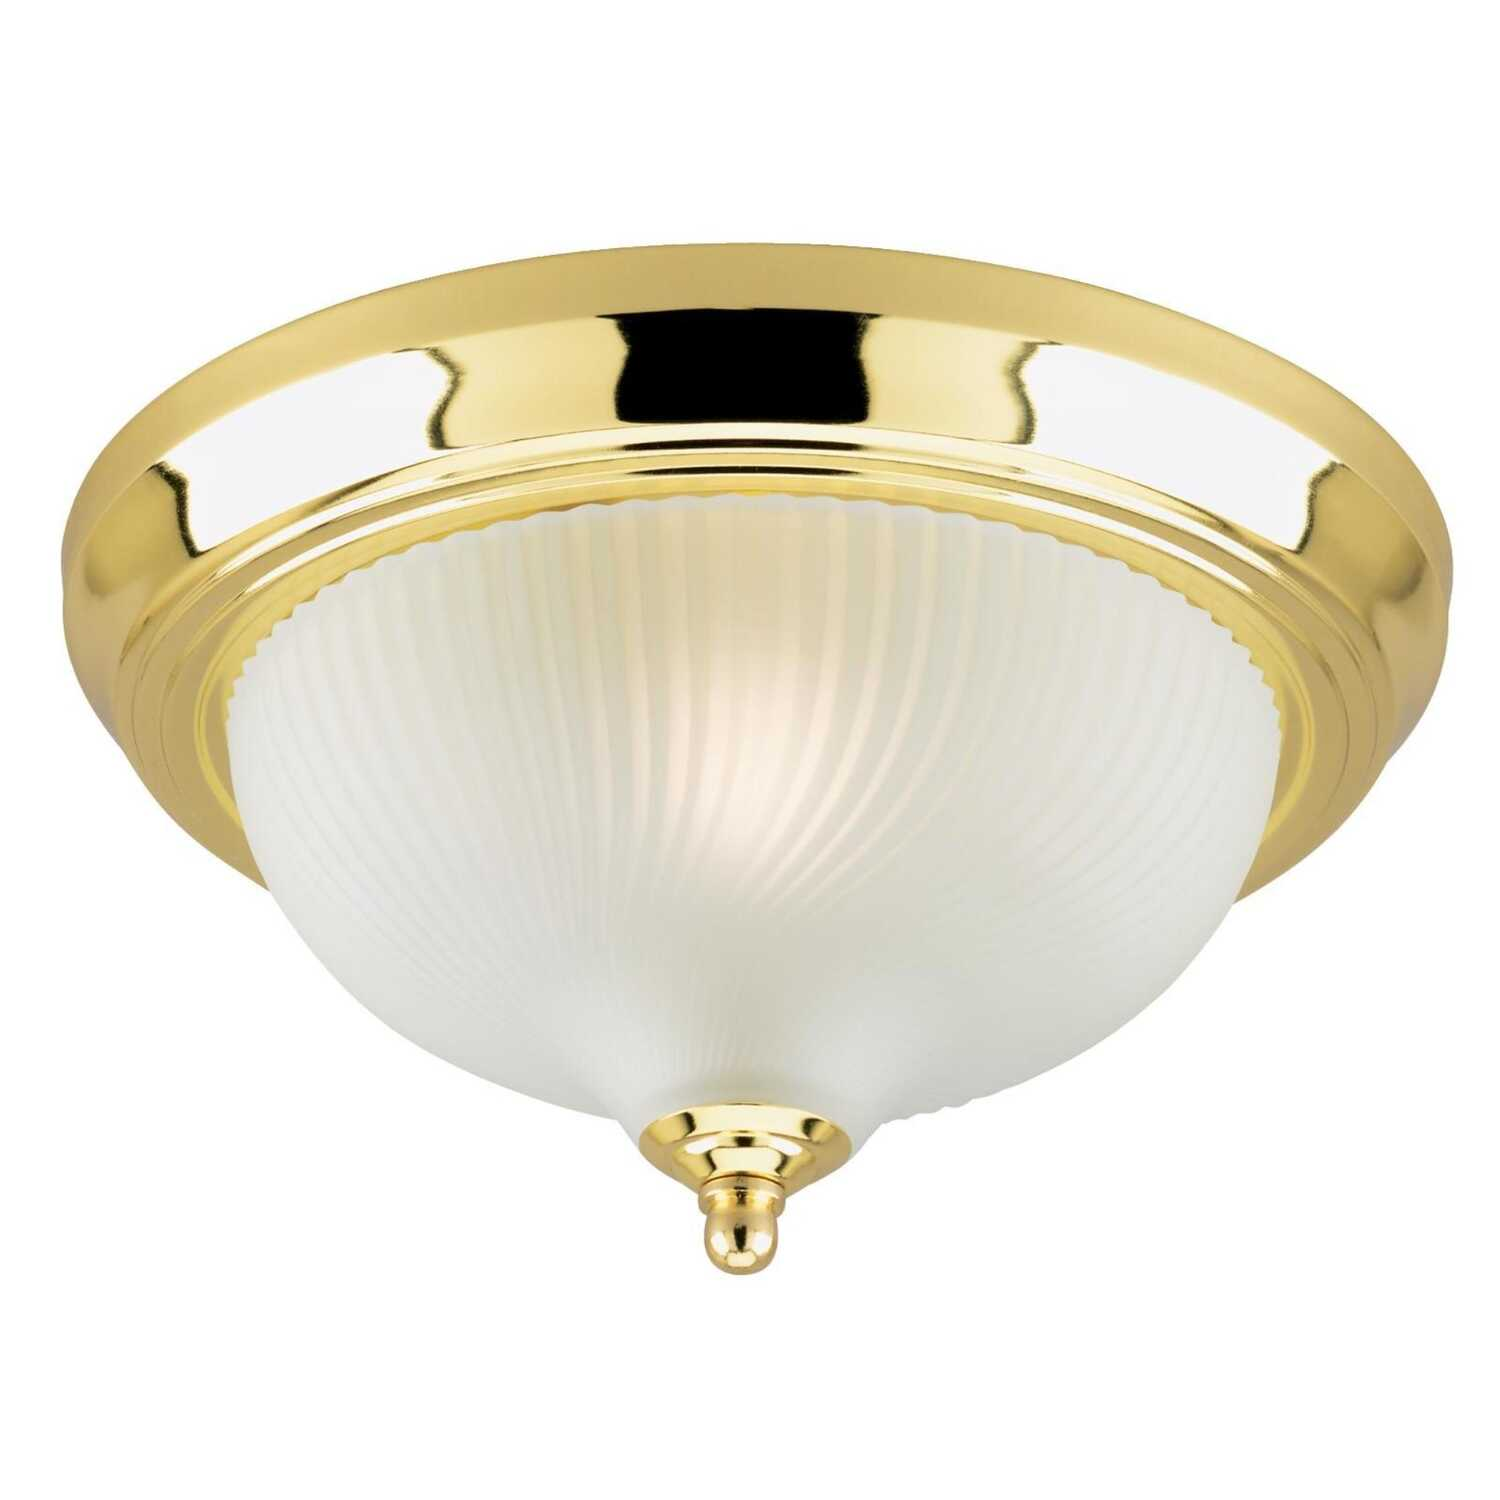 Westinghouse  5-7/8 in. H x 11 in. W x 11.6 in. L Ceiling Light